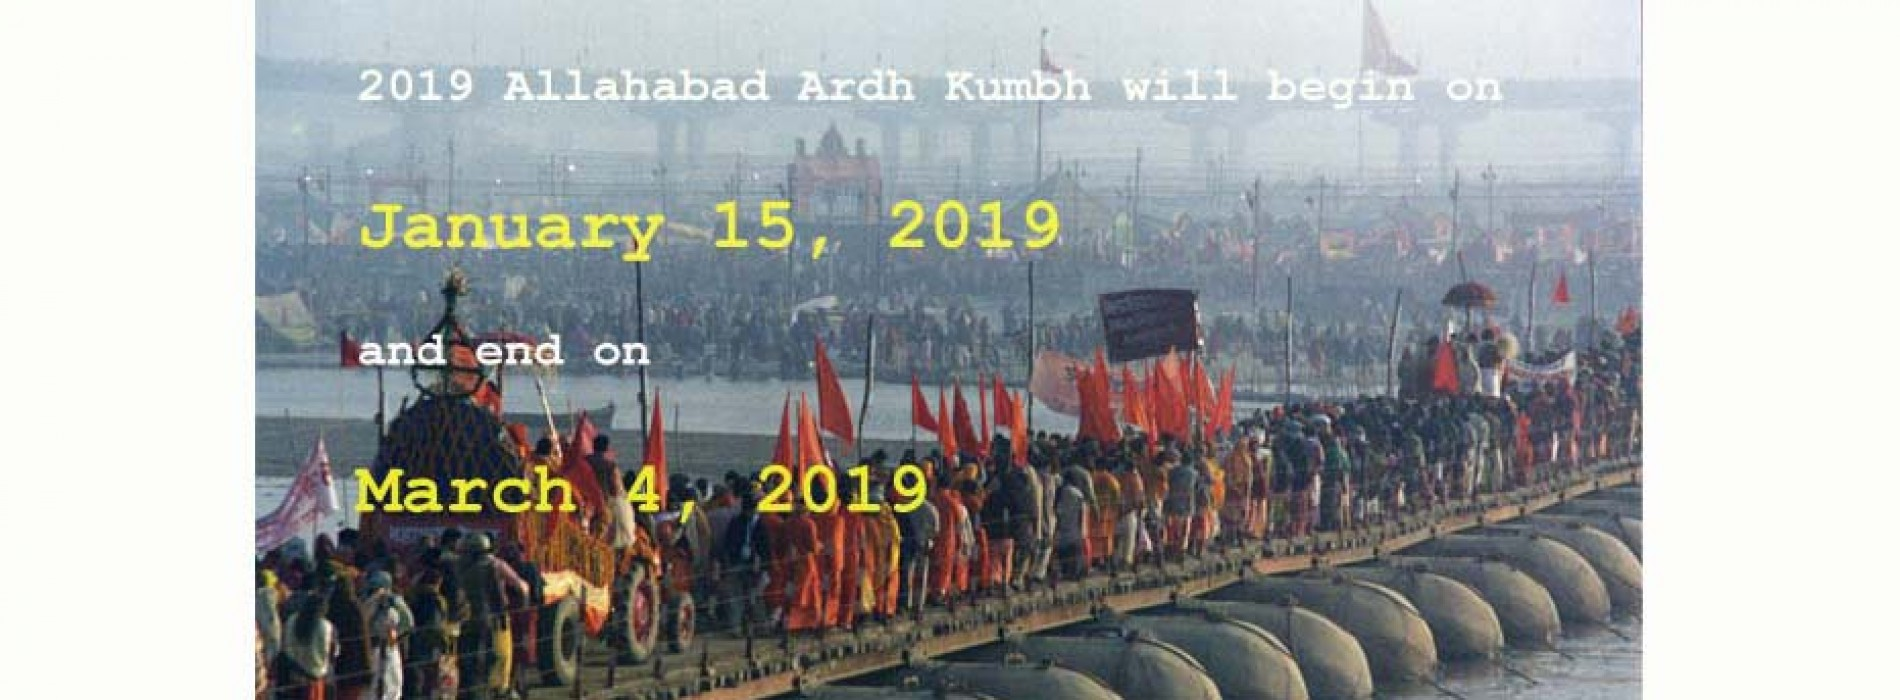 PM Modi to oversee Kumbh Mela preparations which will be held in Allahabad in 2019